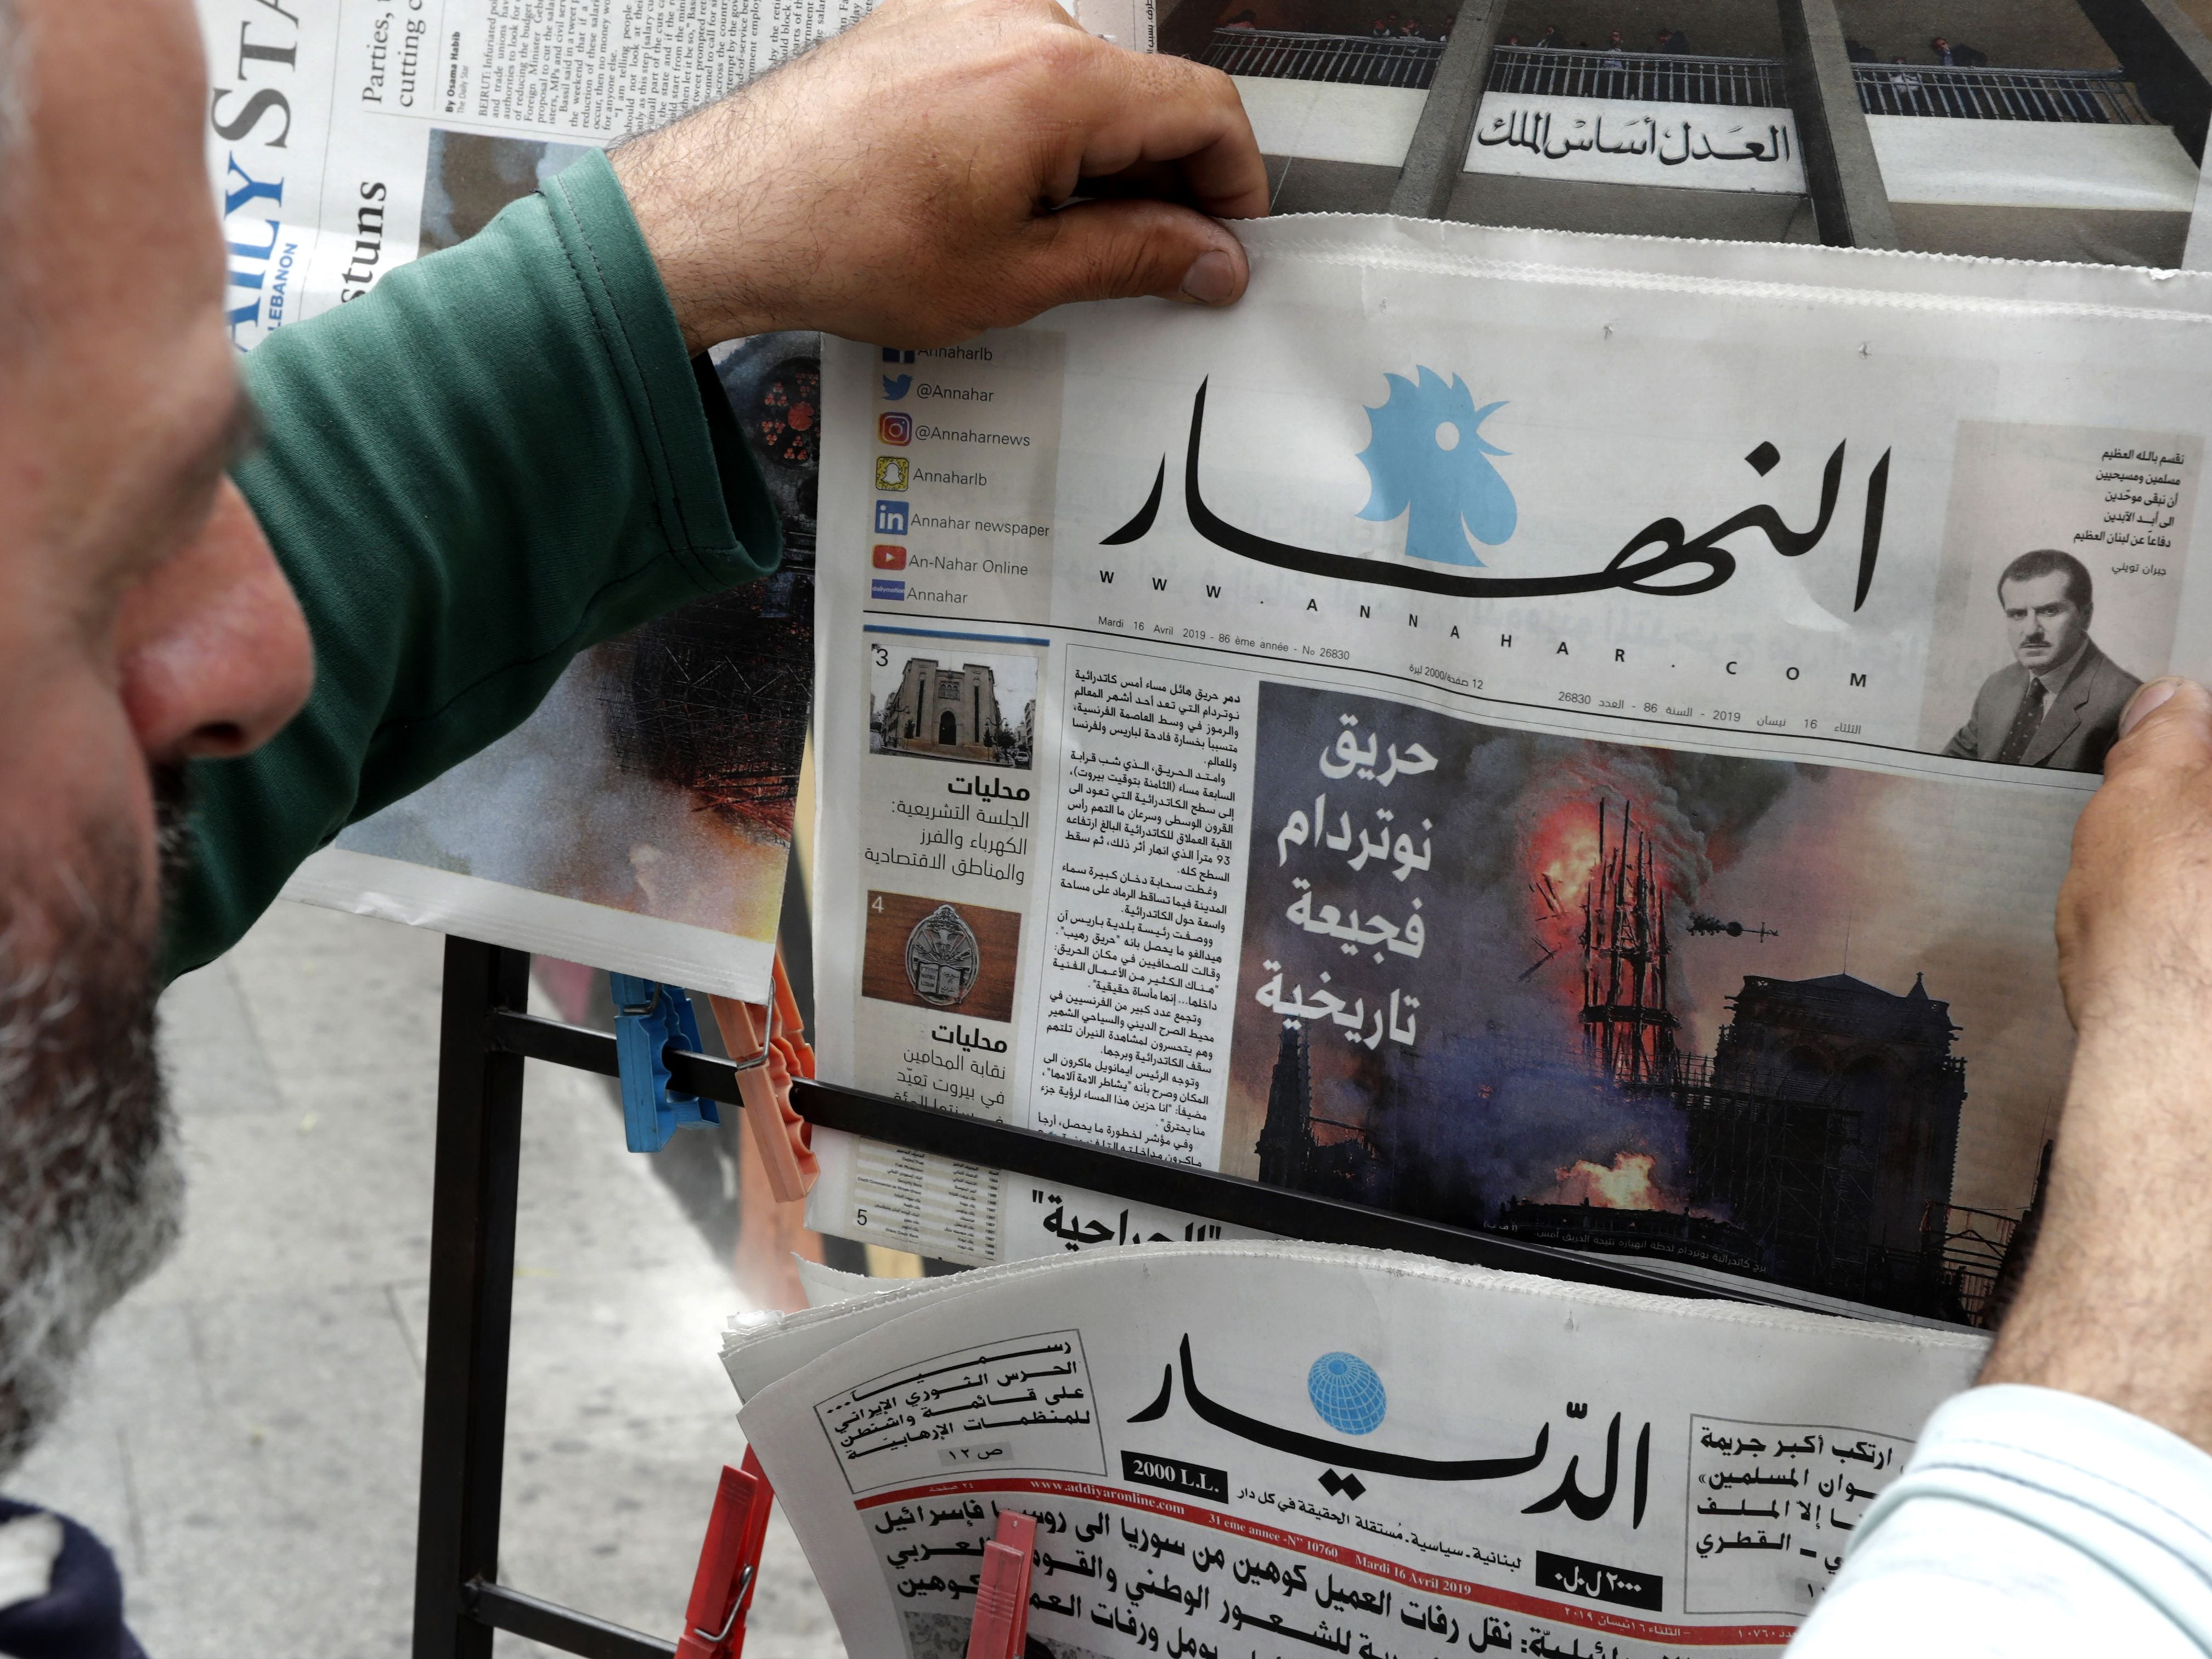 A man looks at the front page of the Lebanese Annahar newspaper, featuring on its front page an image of the fire that ravaged the Parisian Notre Dame cathedral, in the capital Beirut on April 16, 2019. - Paris was struck in its very heart as flames devoured the roof of Notre-Dame, the medieval cathedral made famous by Victor Hugo, its two massive towers flanked with gargoyles instantly recognisable even by people who have never visited the city. (Photo by ANWAR AMRO / AFP)ANWAR AMRO/AFP/Getty Images ORG XMIT: lebanon ORIG FILE ID: AFP_1FO6QP